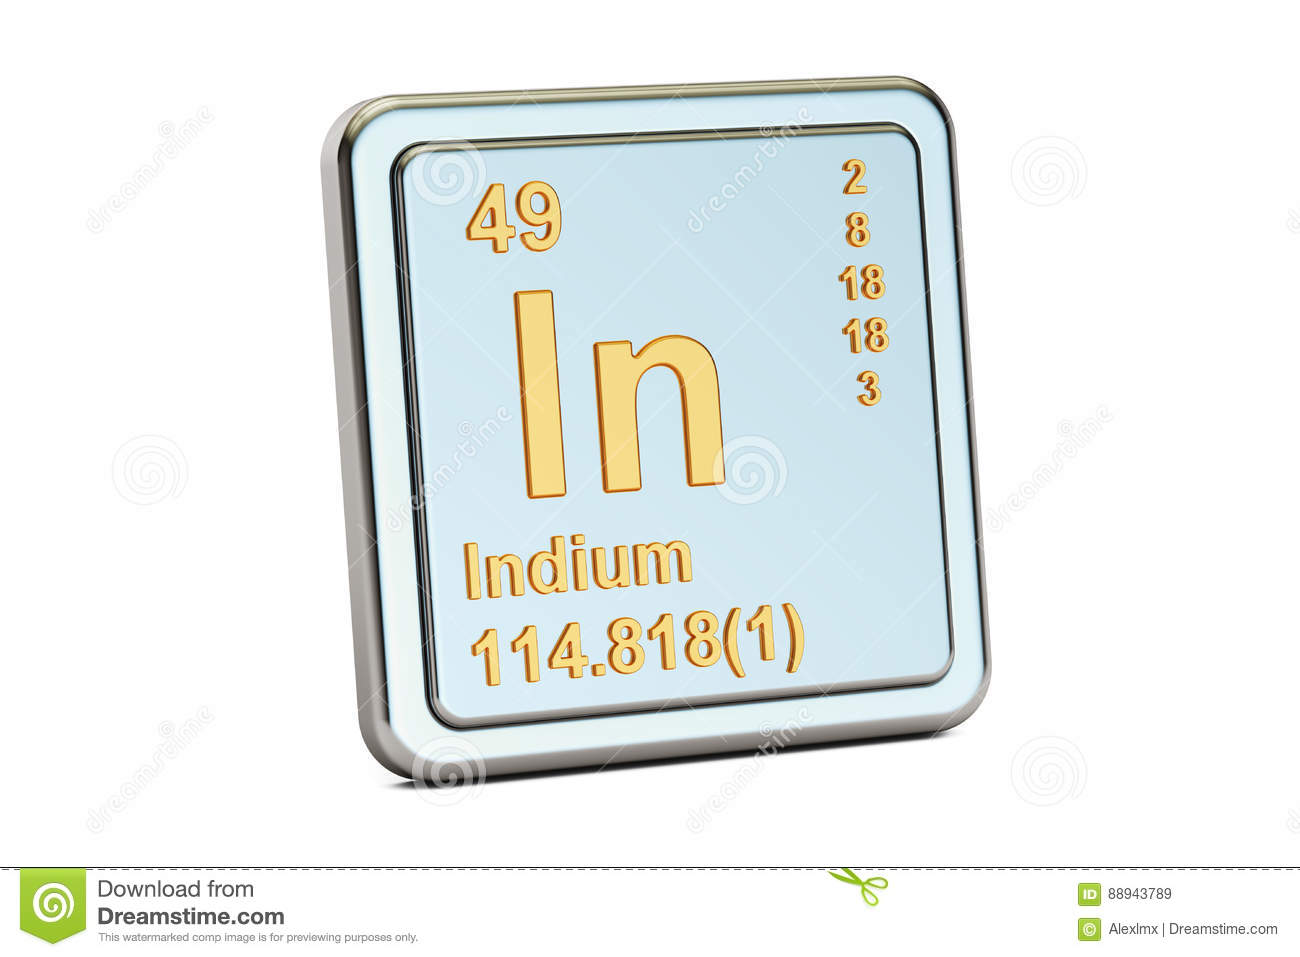 Indium in chemical element sign 3d rendering stock illustration indium in chemical element sign 3d rendering biocorpaavc Images